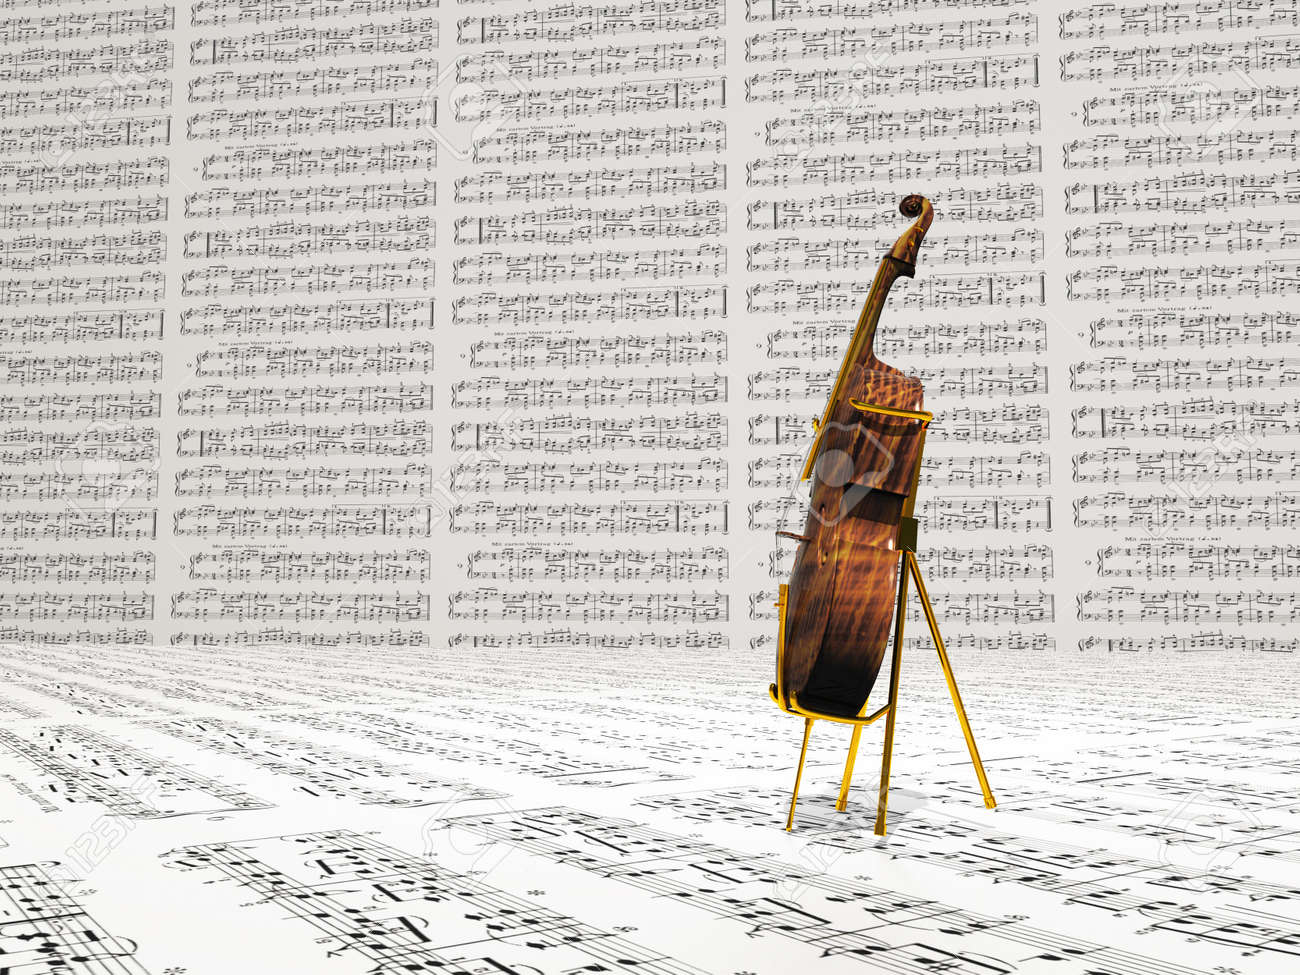 Cello and music notation background Stock Photo - 14841317